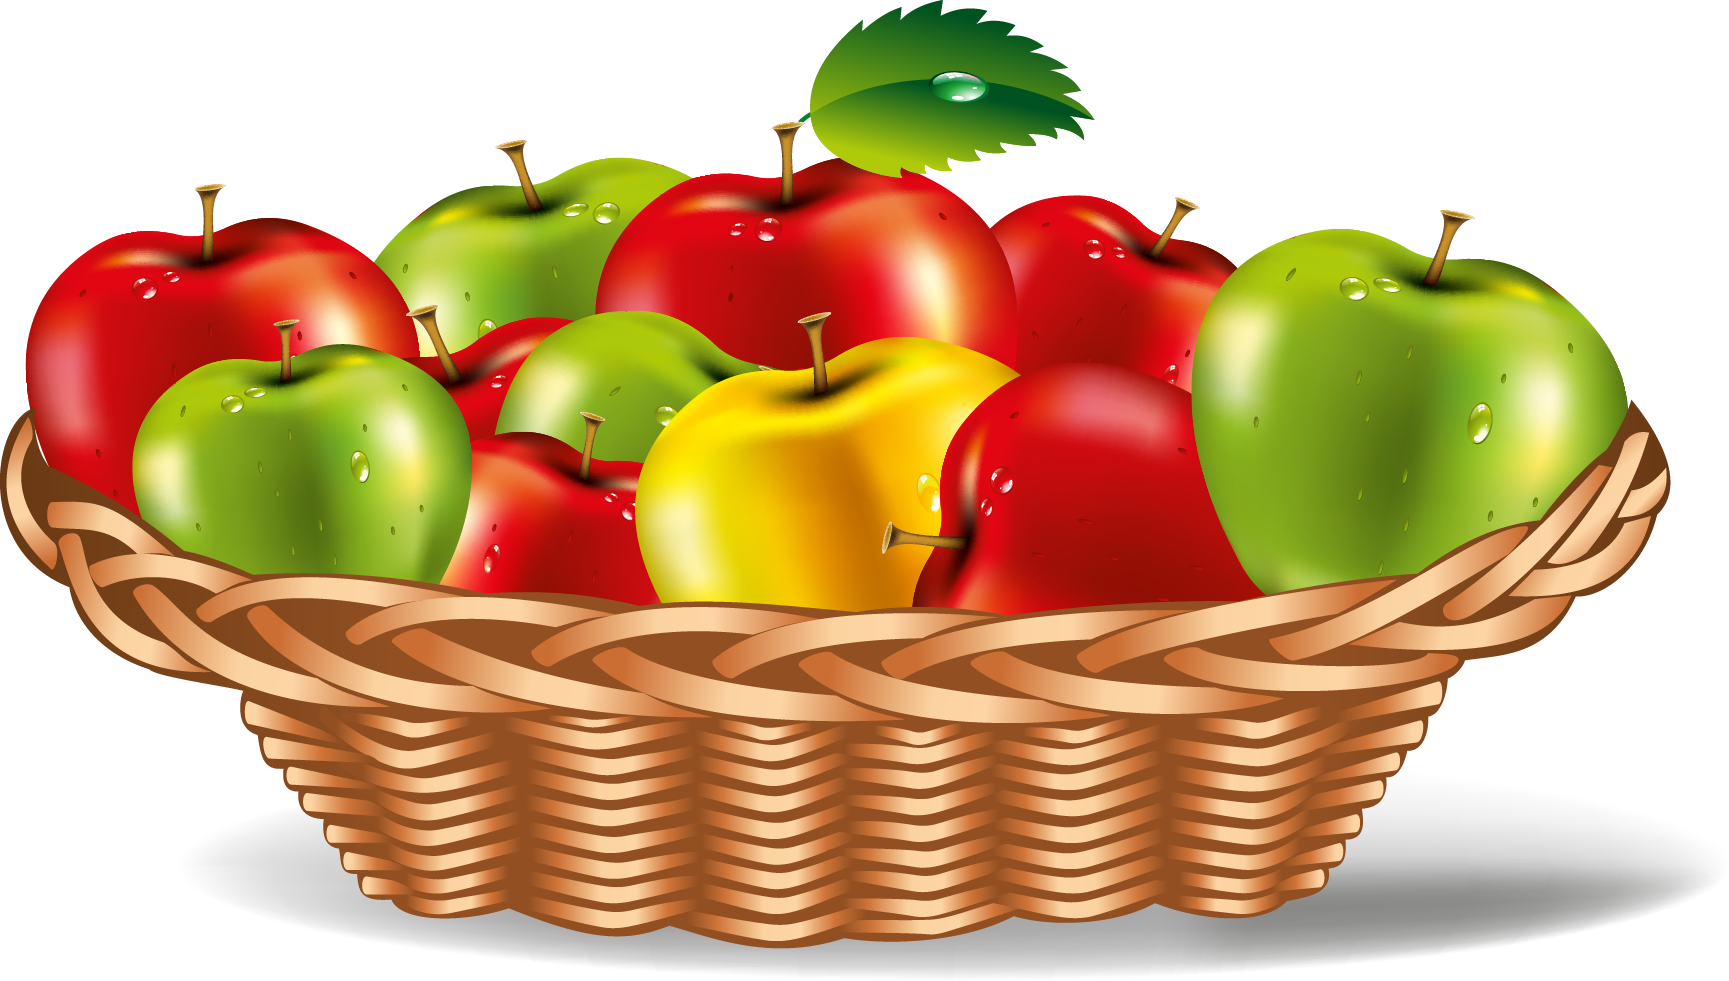 Apples in plate clipart picture stock Apple Plate Vector Art | Puzzled | Fruit, Fruit cartoon, Fruit clipart picture stock